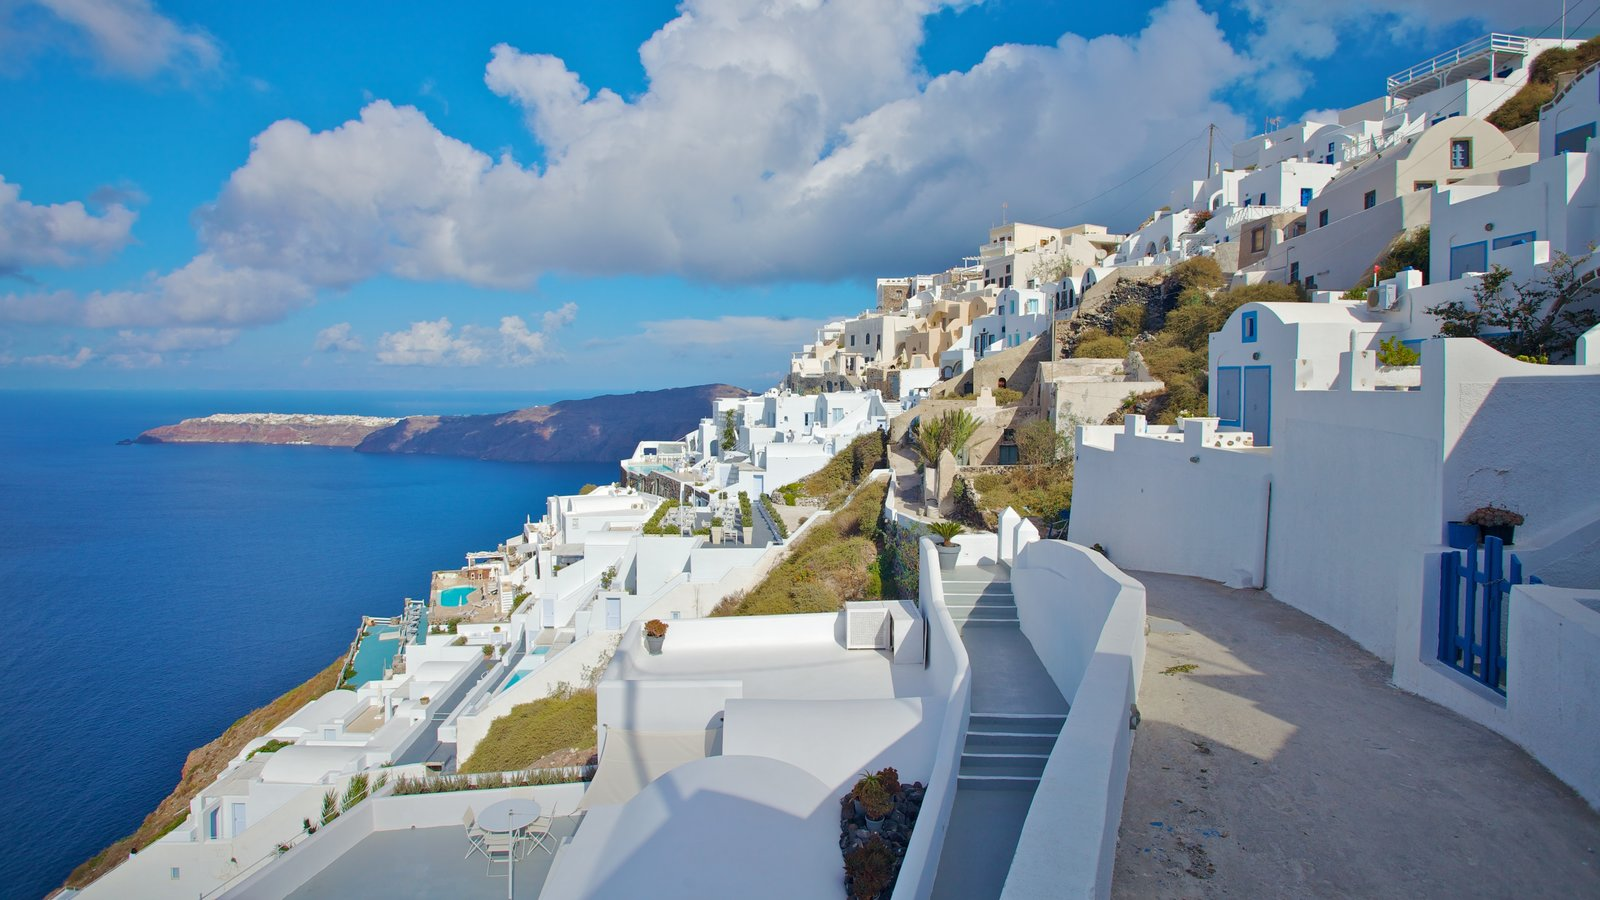 Fira featuring a coastal town and general coastal views